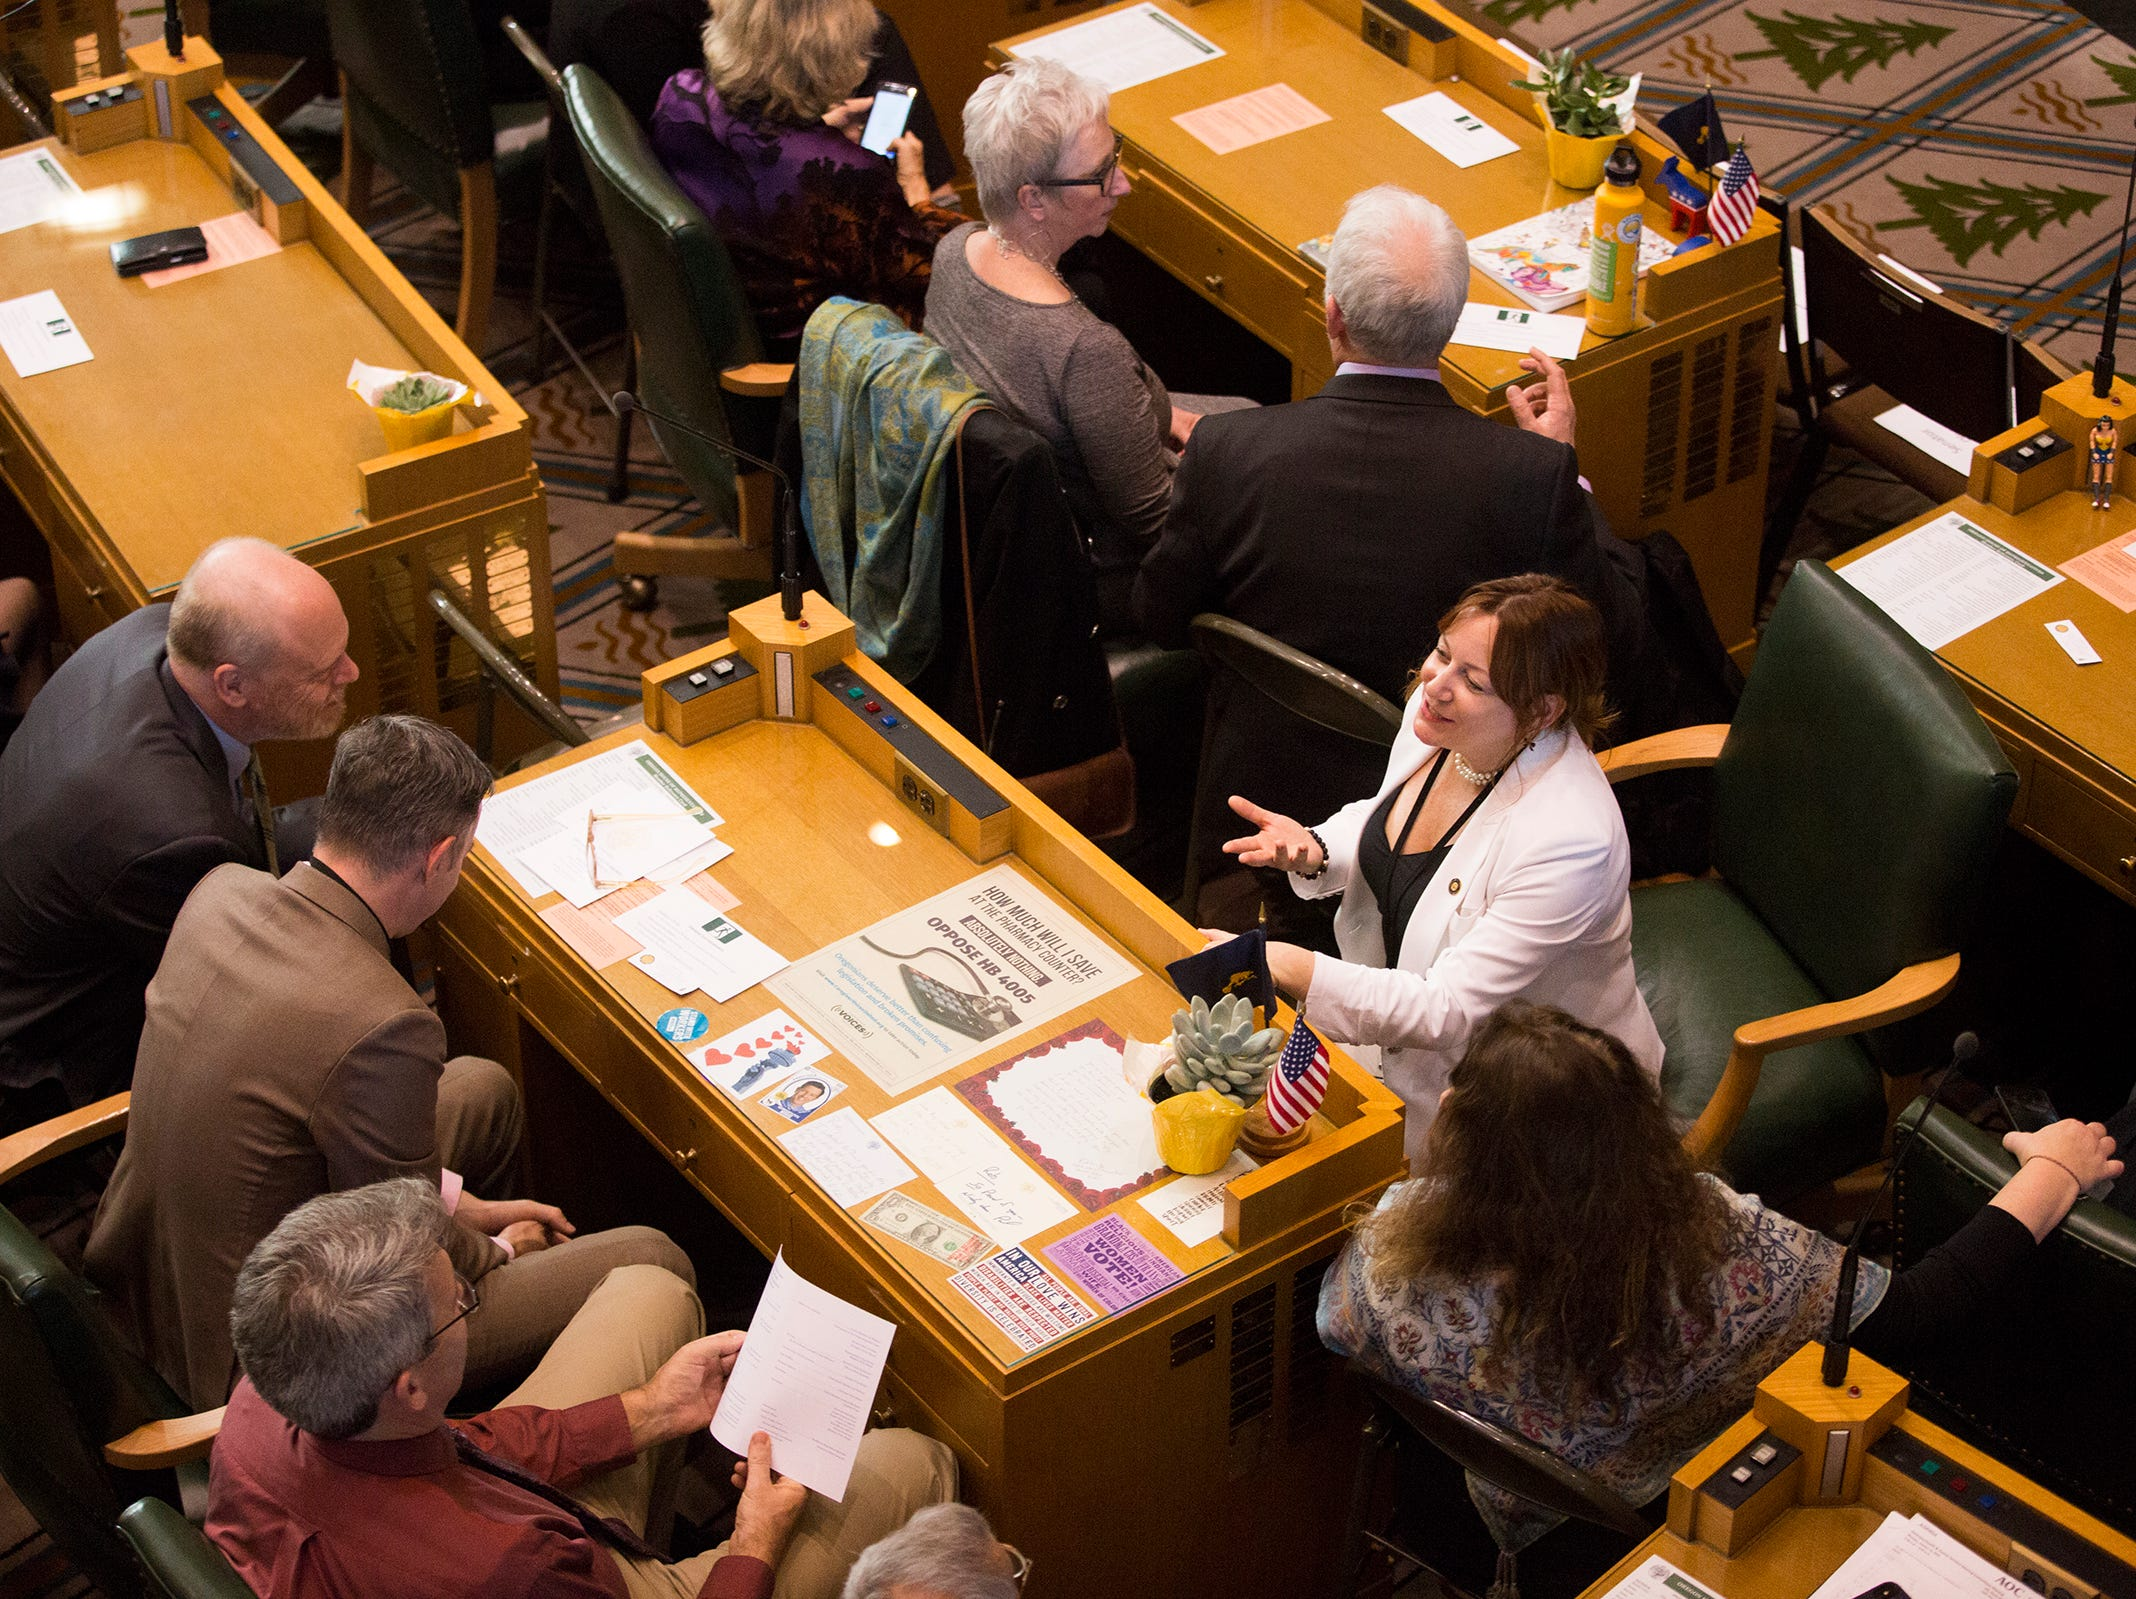 Oregon's Legislative Assembly gathers for Governor Kate Brown's inaugural address at the Oregon State Capitol on Jan. 14, 2019.